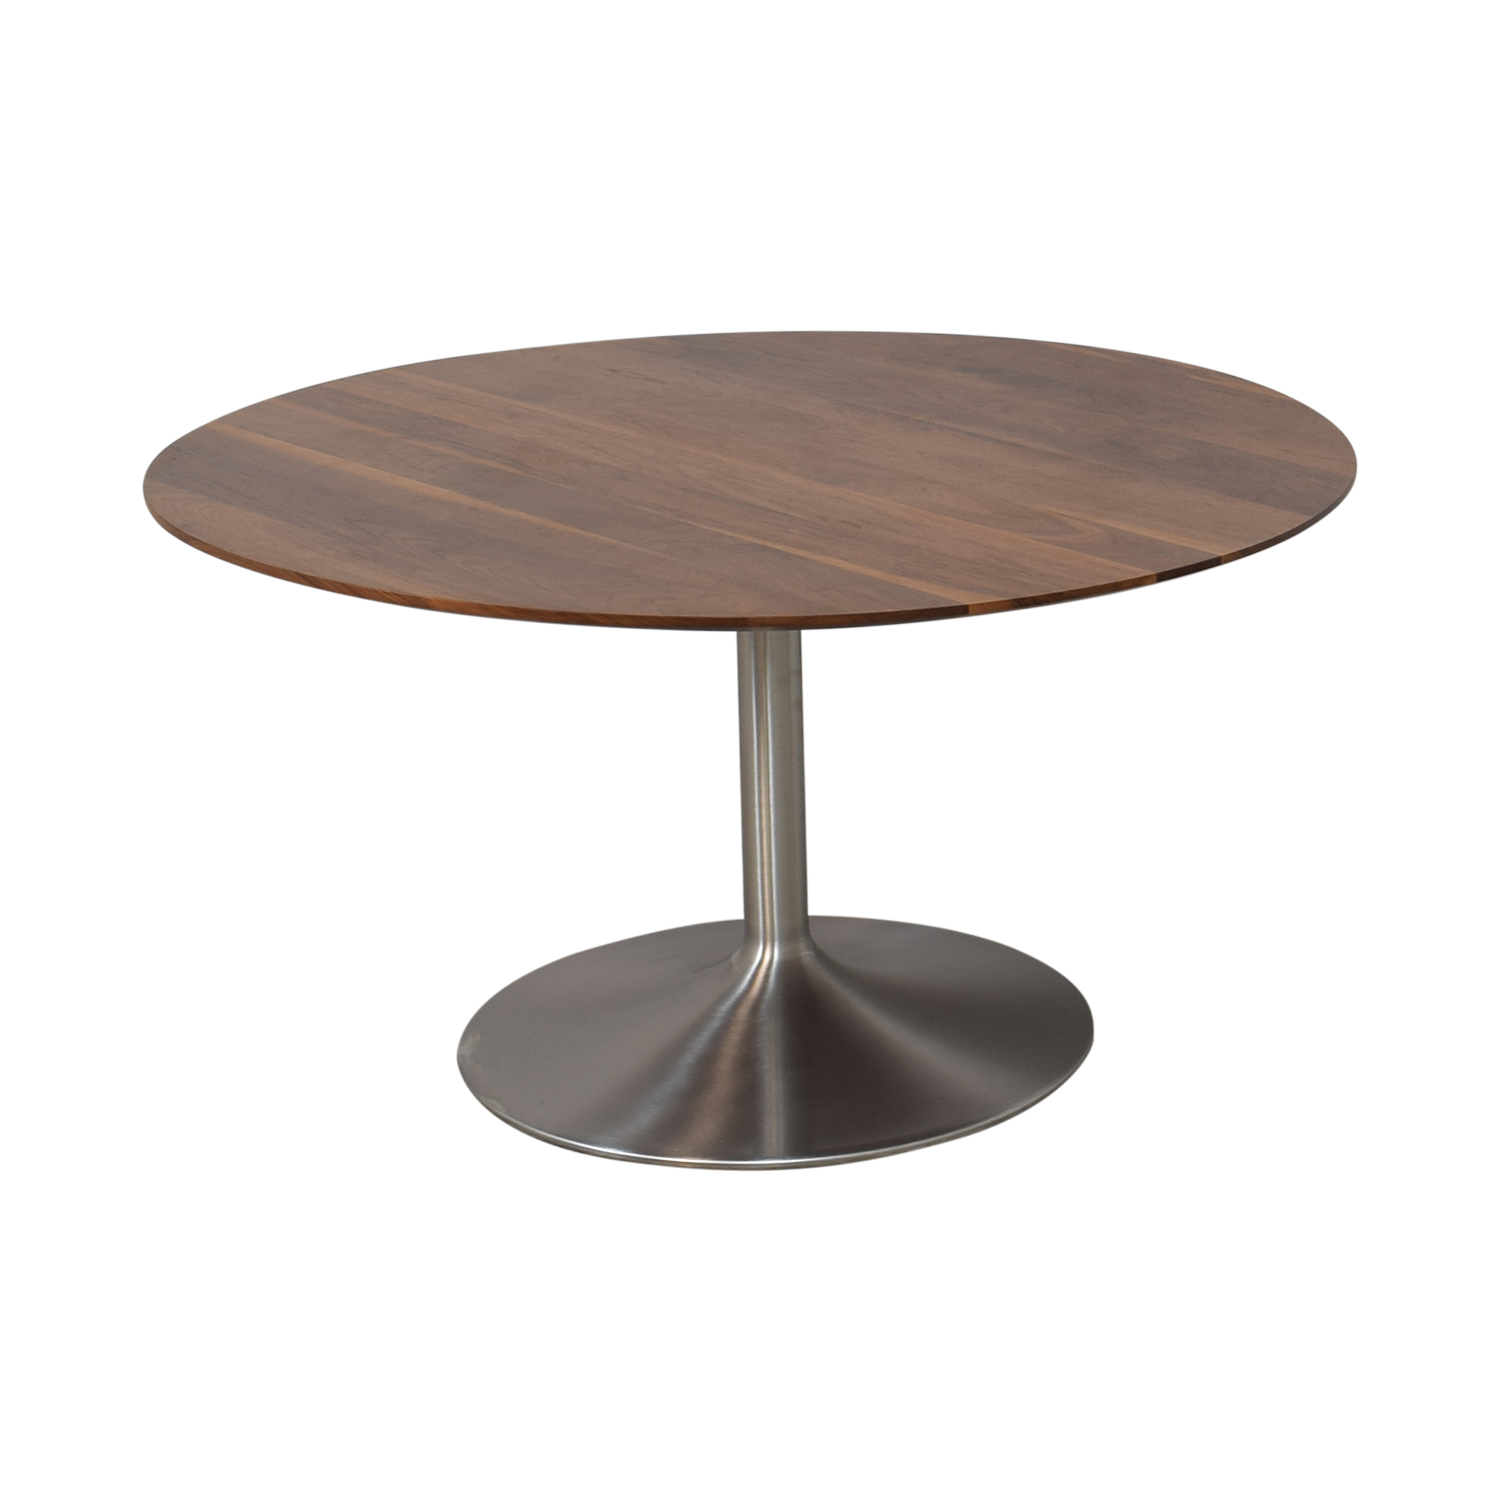 Room & Board Room & Board Aria Round Dining Table coupon